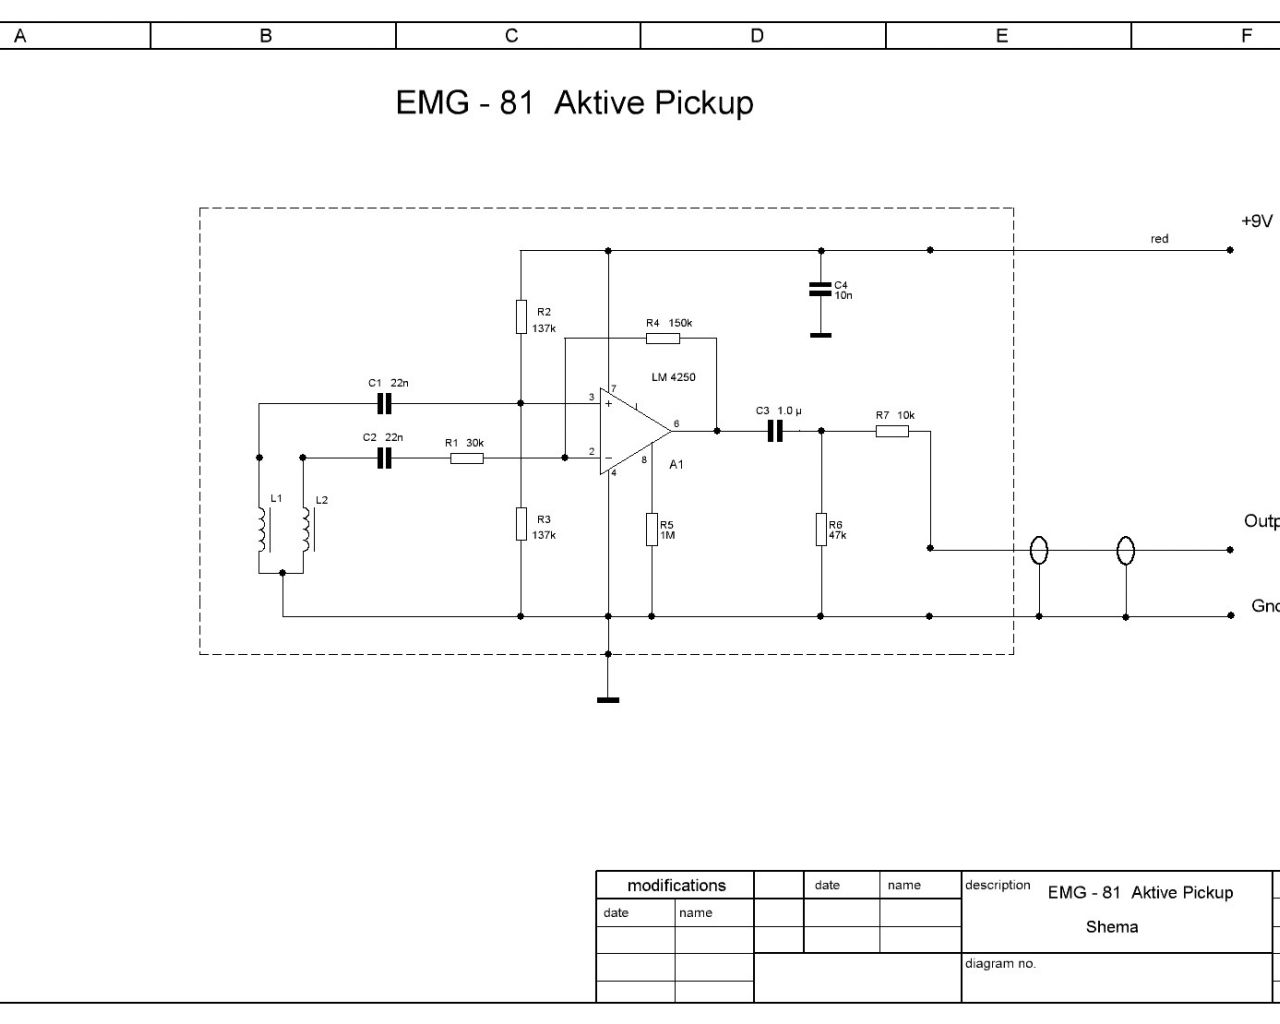 emg wiring diagram 81 85 1 volume tone images additionally emg emg 81 85 pickups wiring diagram website